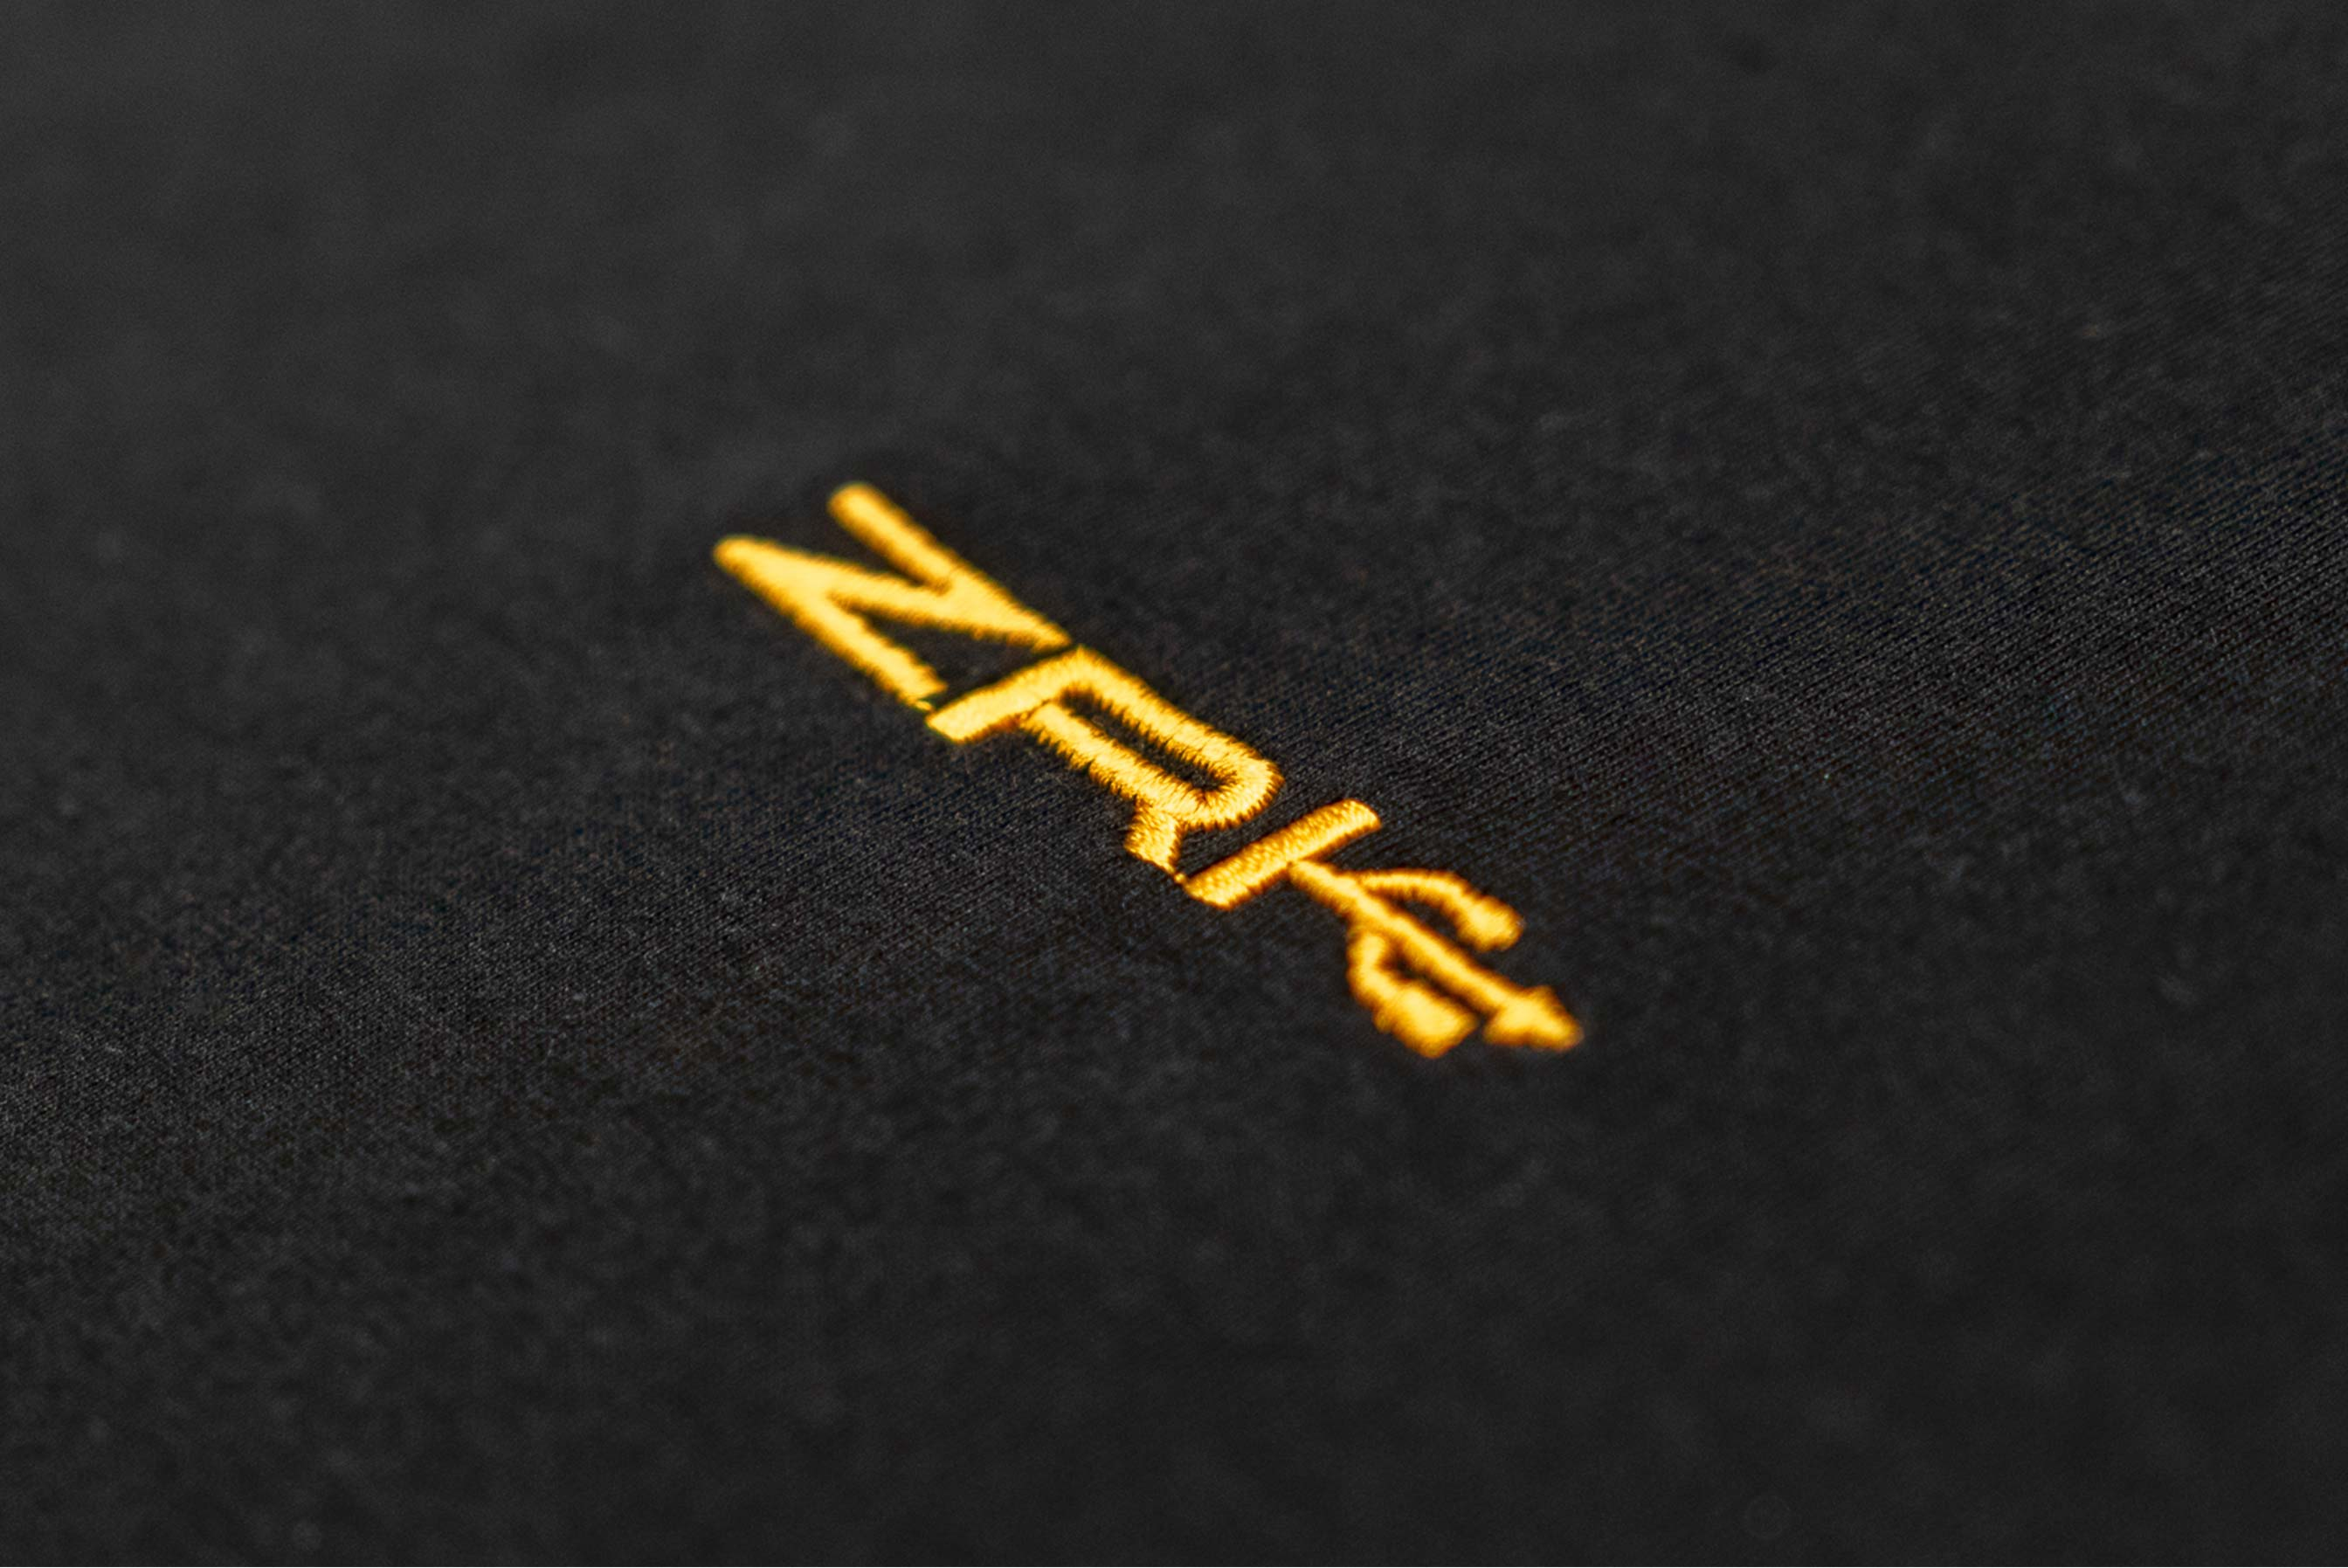 ZRK USB LOGO TEE // BLACK & GOLD